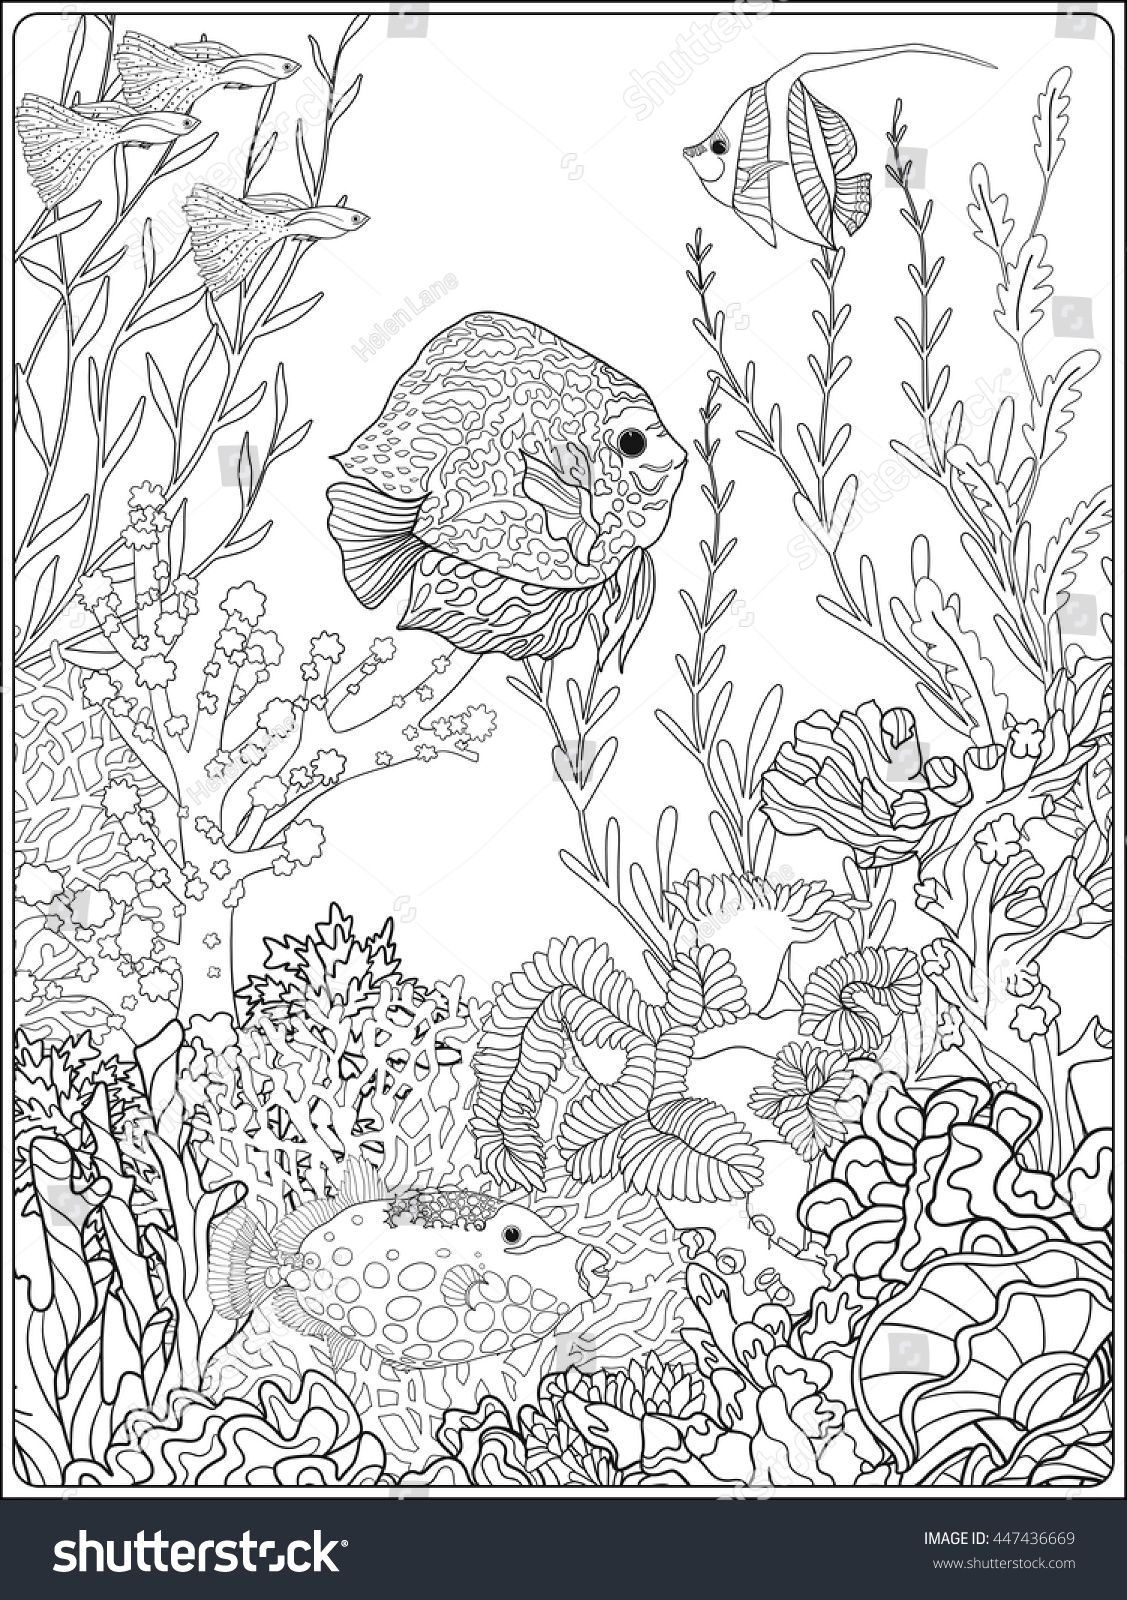 Adult Coloring Book Page With Underwater World Coral Reef Corals Fish And Seaweeds Outline Vector Illustration